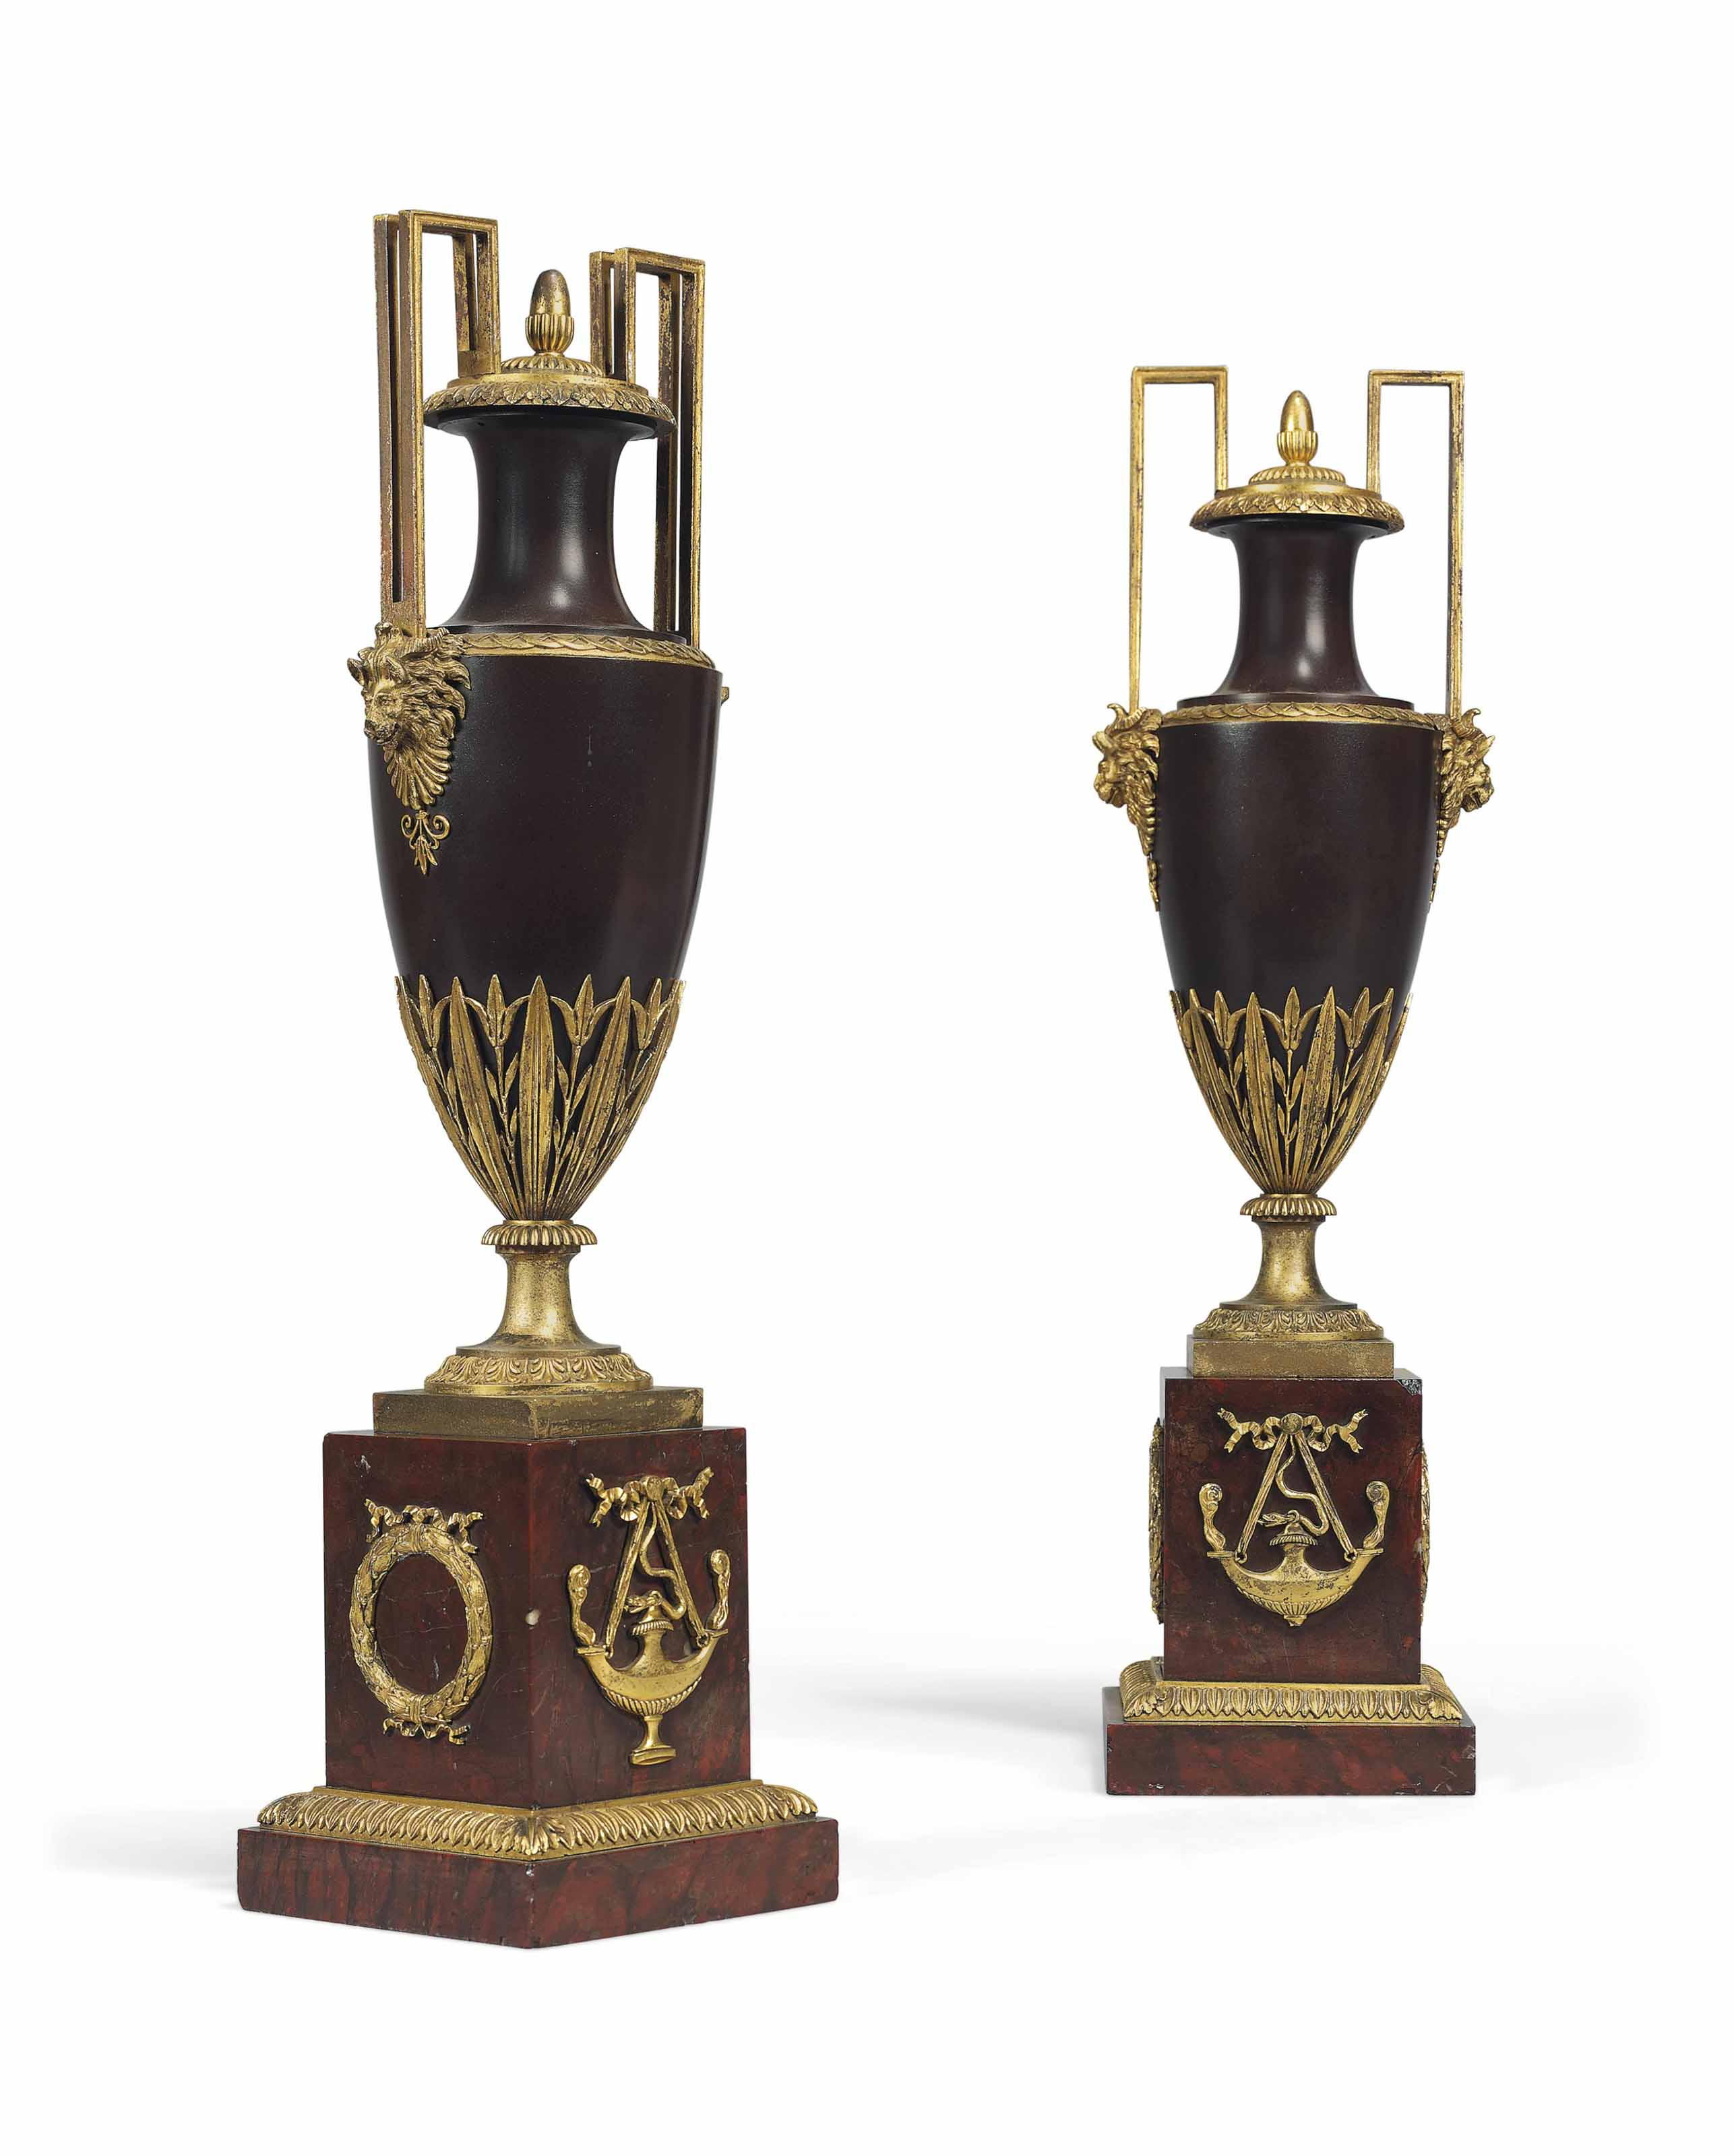 A PAIR OF DIRECTOIRE ORMOLU-MOUNTED PATINATED BRONZE VASES AND COVERS